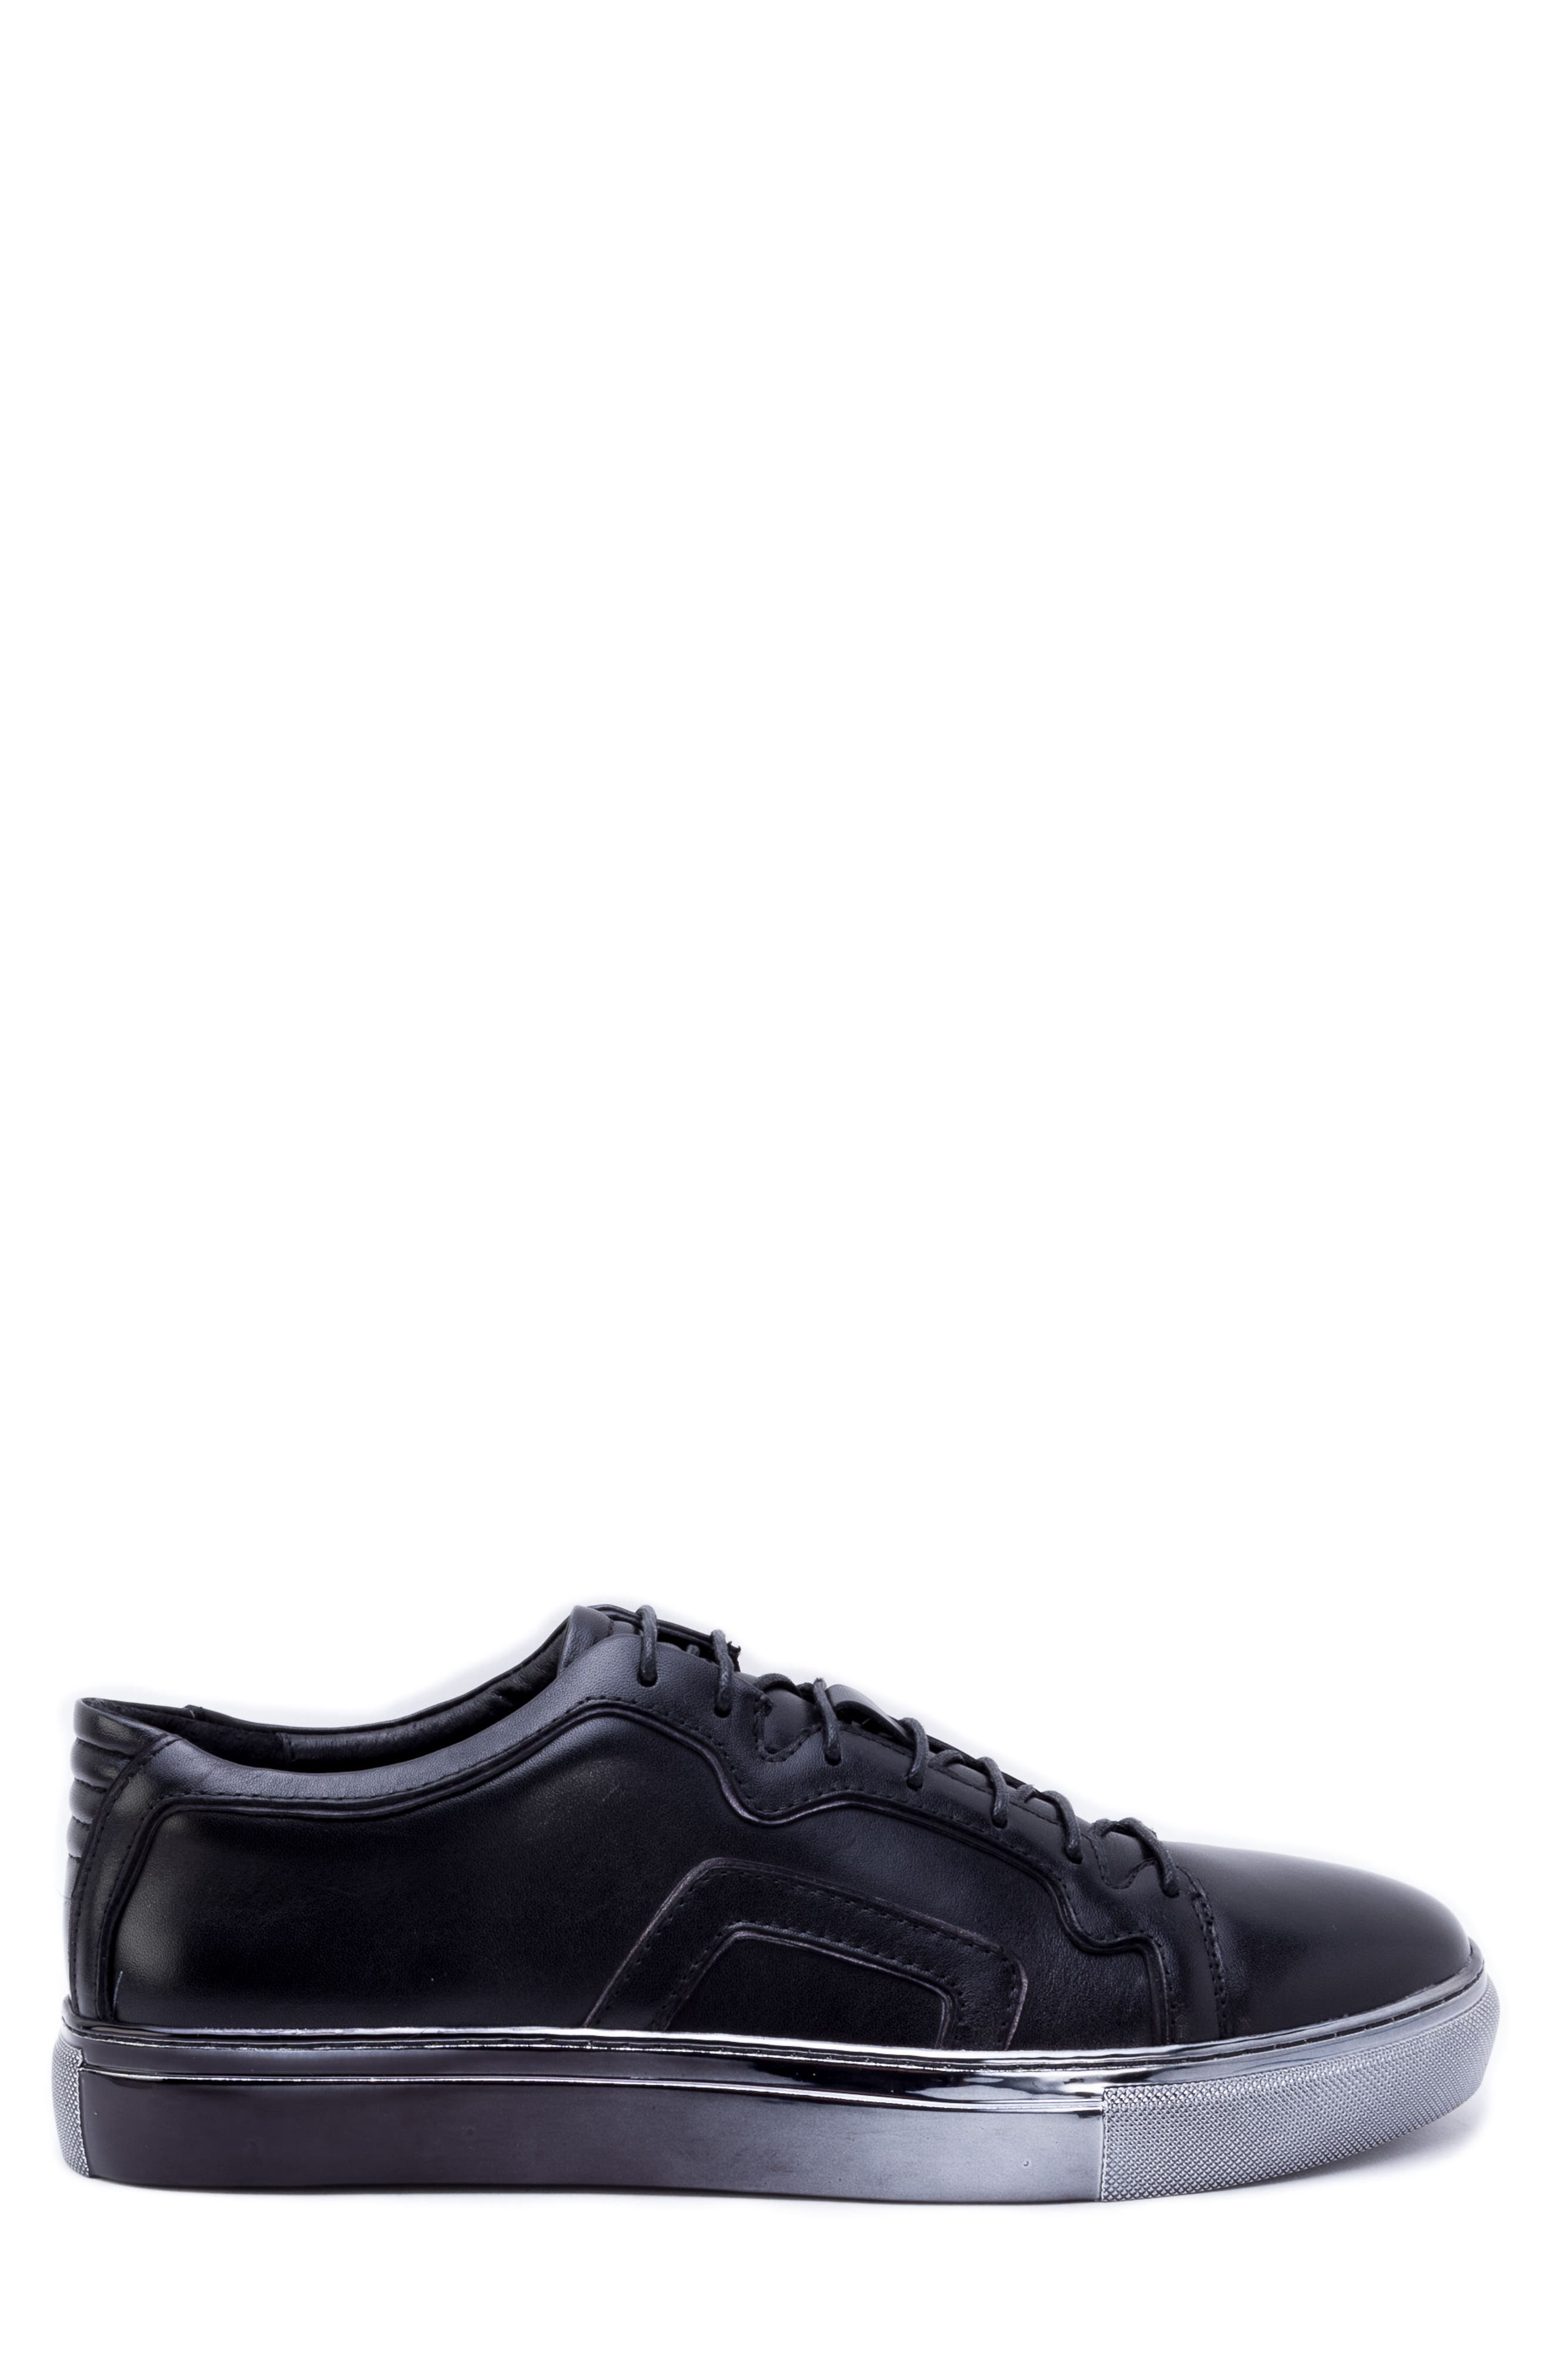 Caine Sneaker,                             Alternate thumbnail 3, color,                             BLACK LEATHER